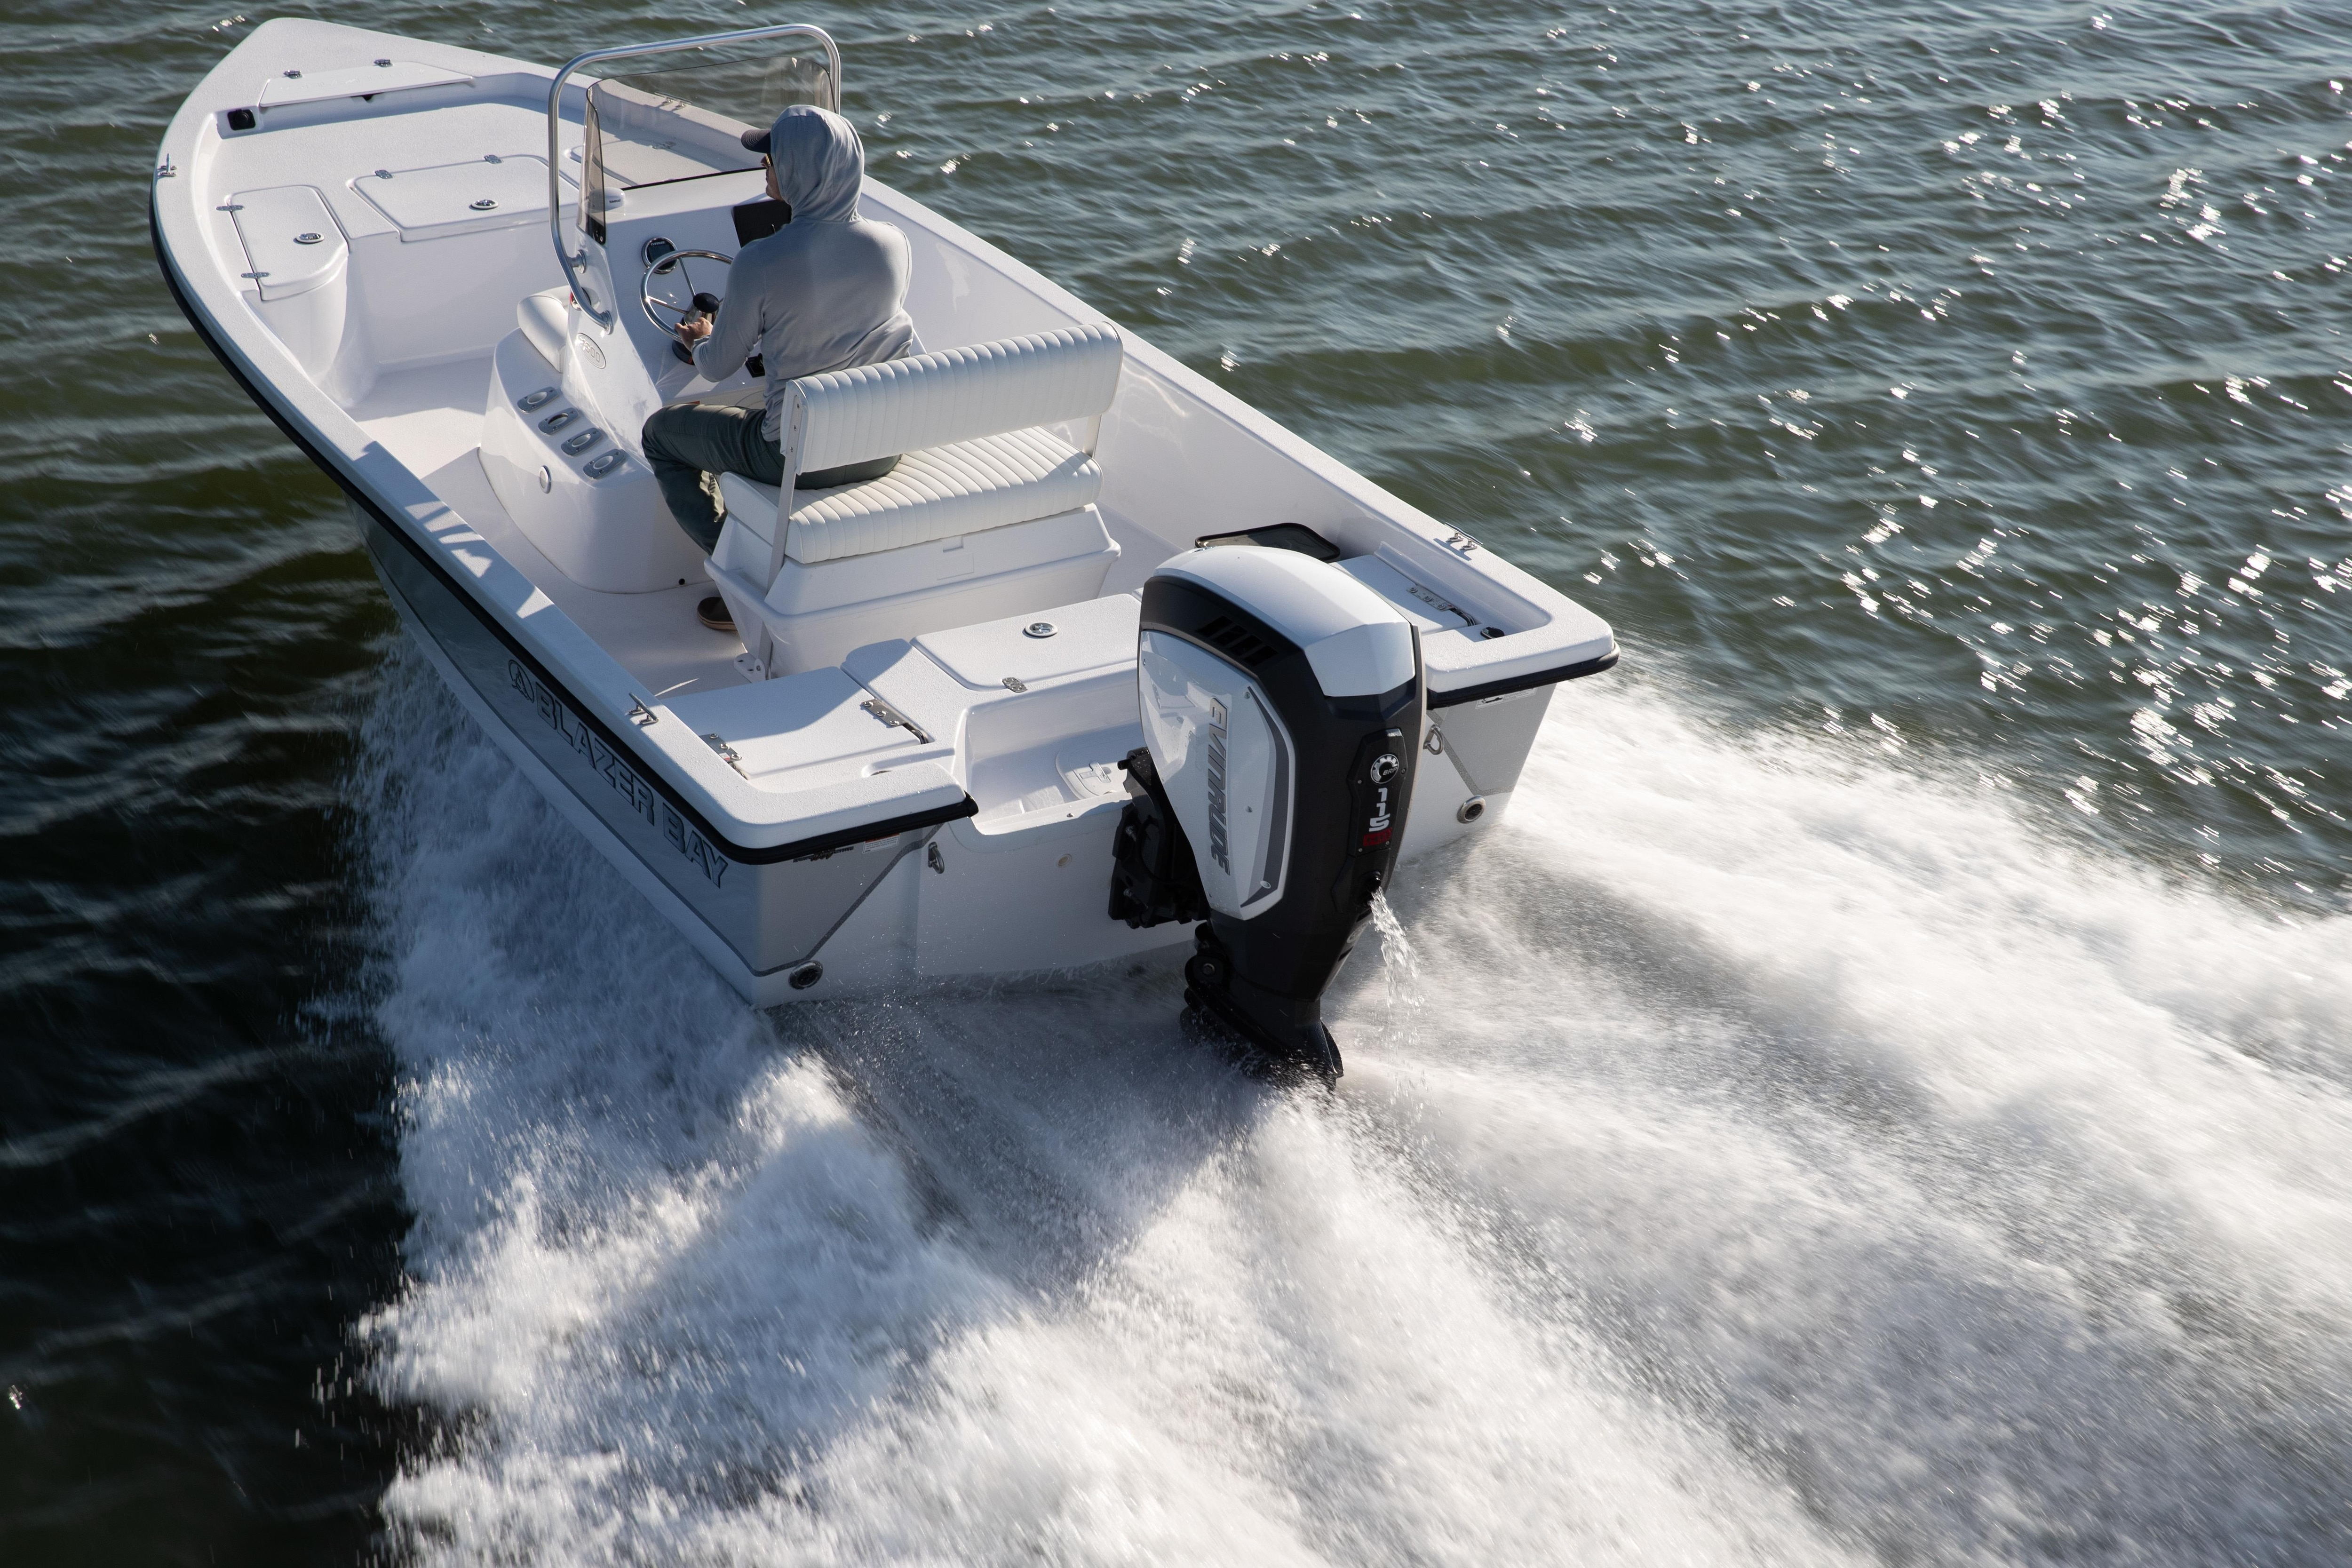 Couple on a boat propulsed by Evinrude outboard motor